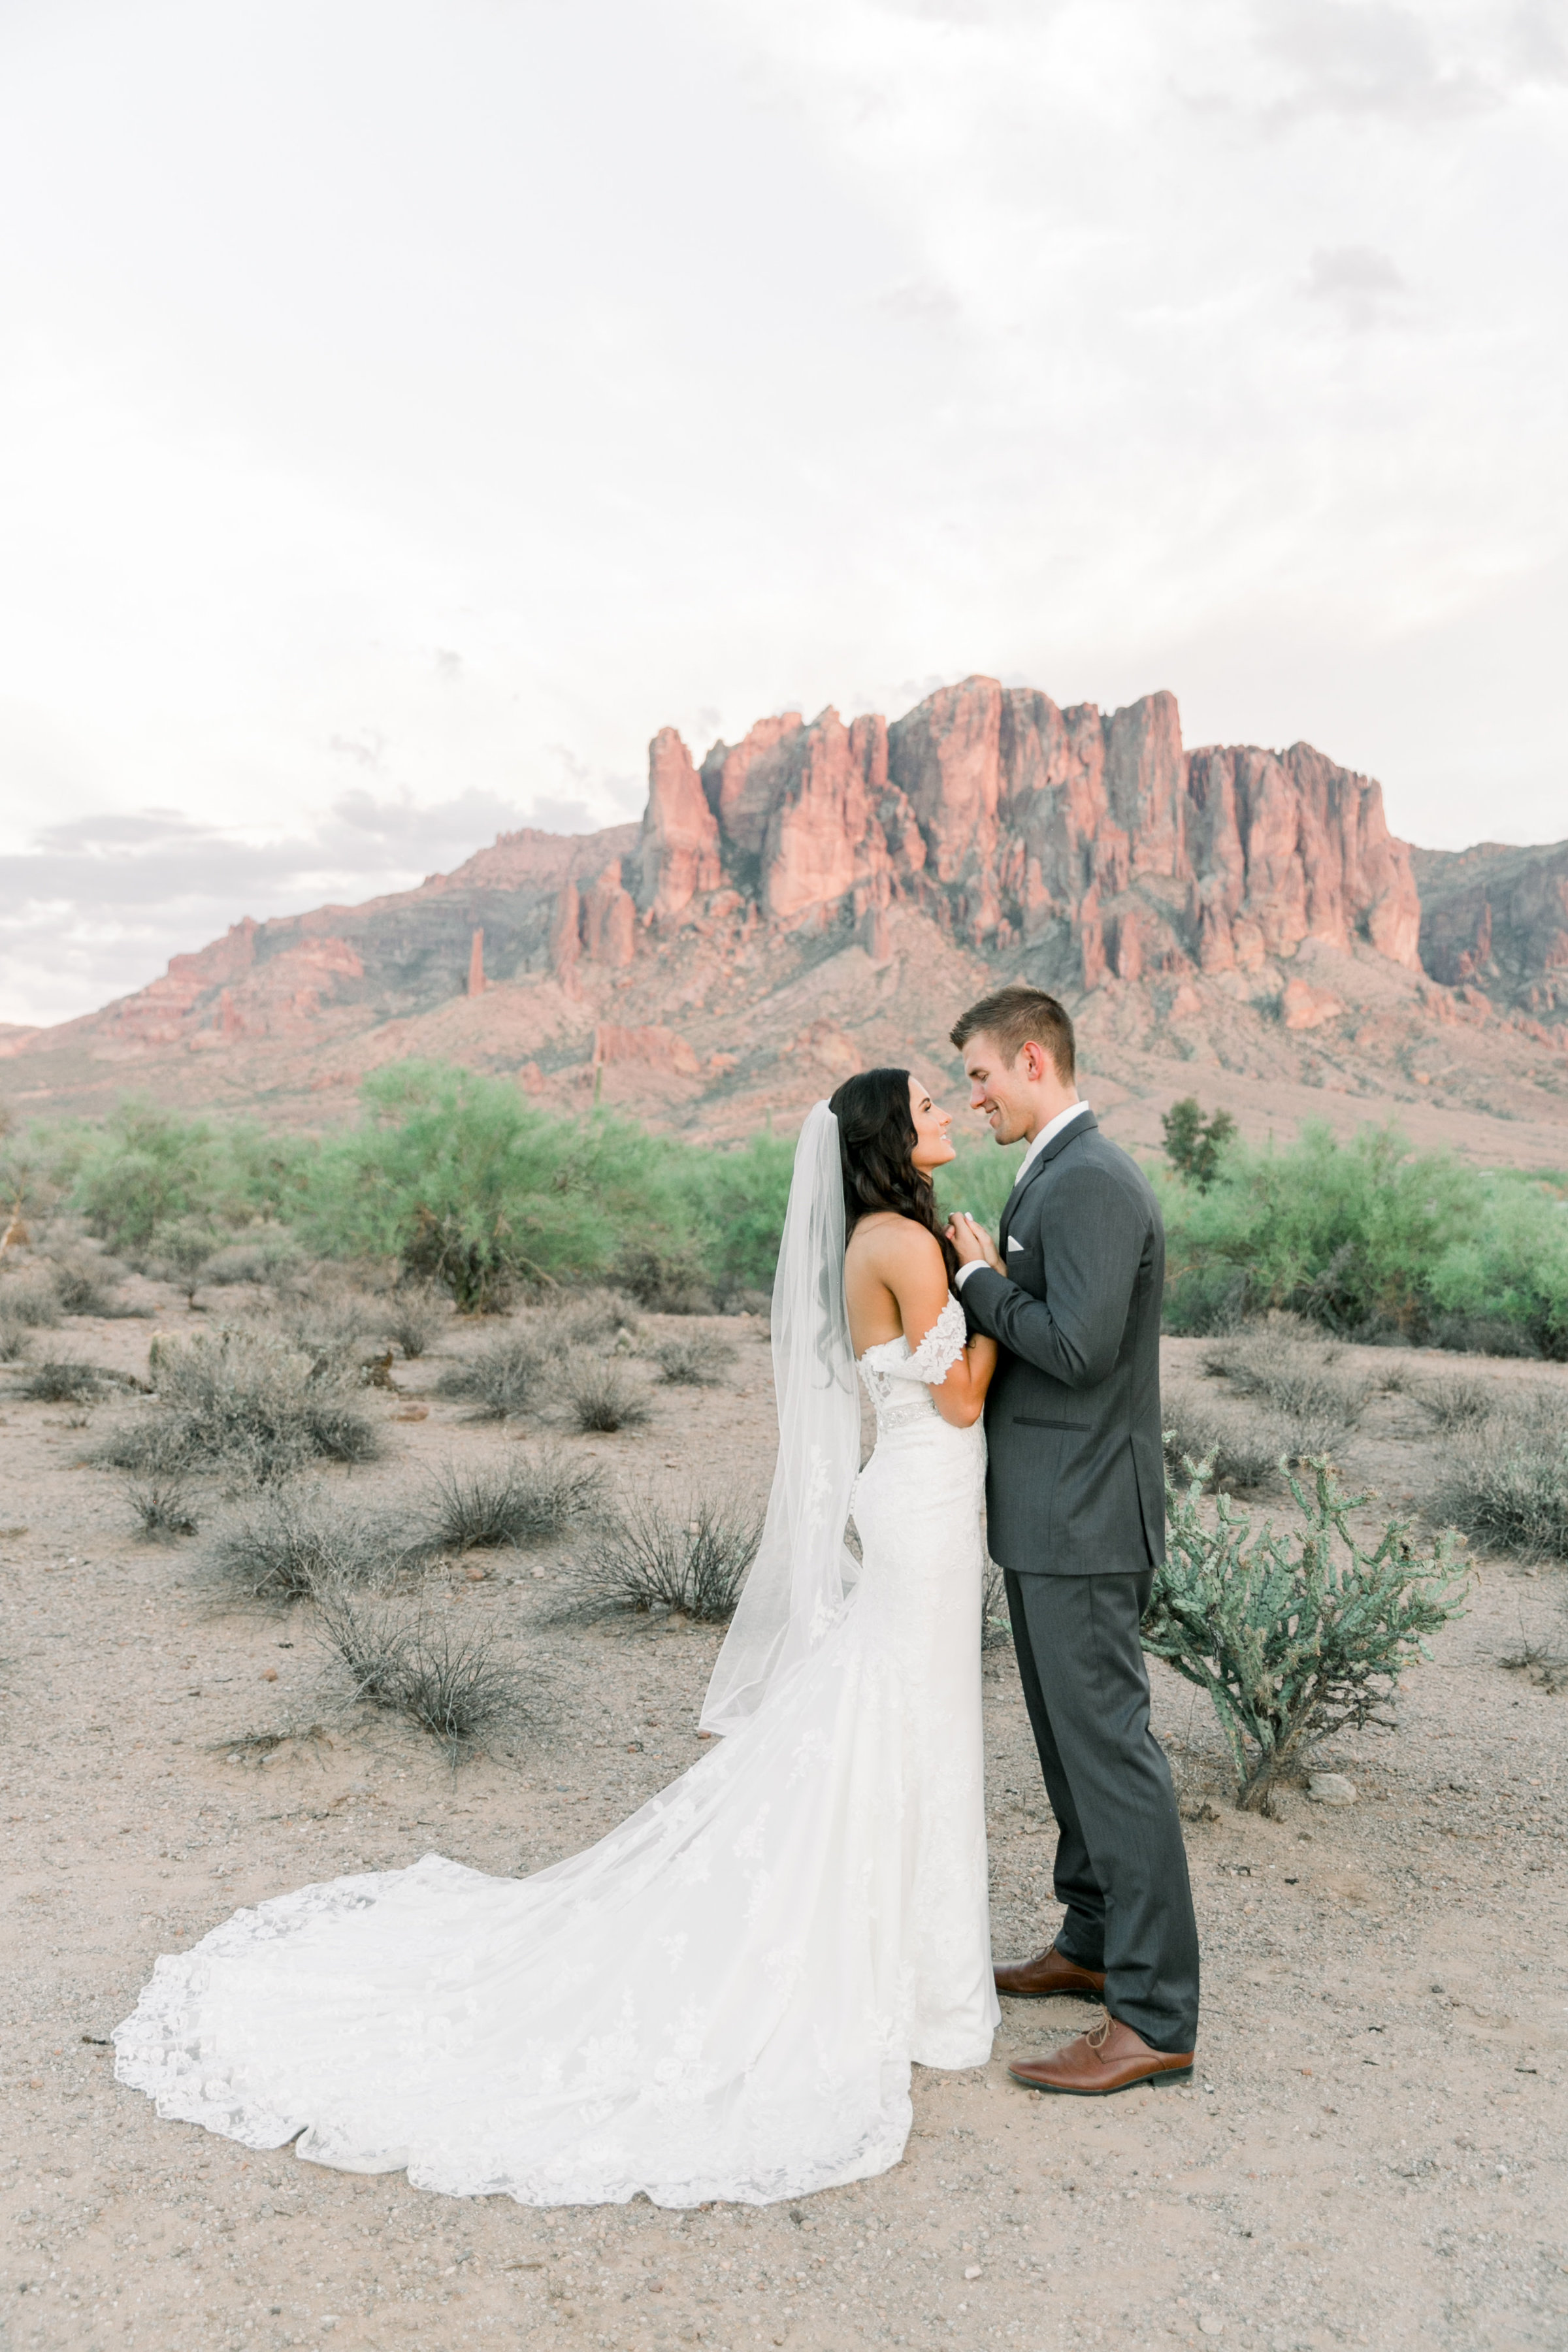 Karlie Colleen Photography - Arizona Wedding - The Paseo Venue - Jackie & Ryan -674